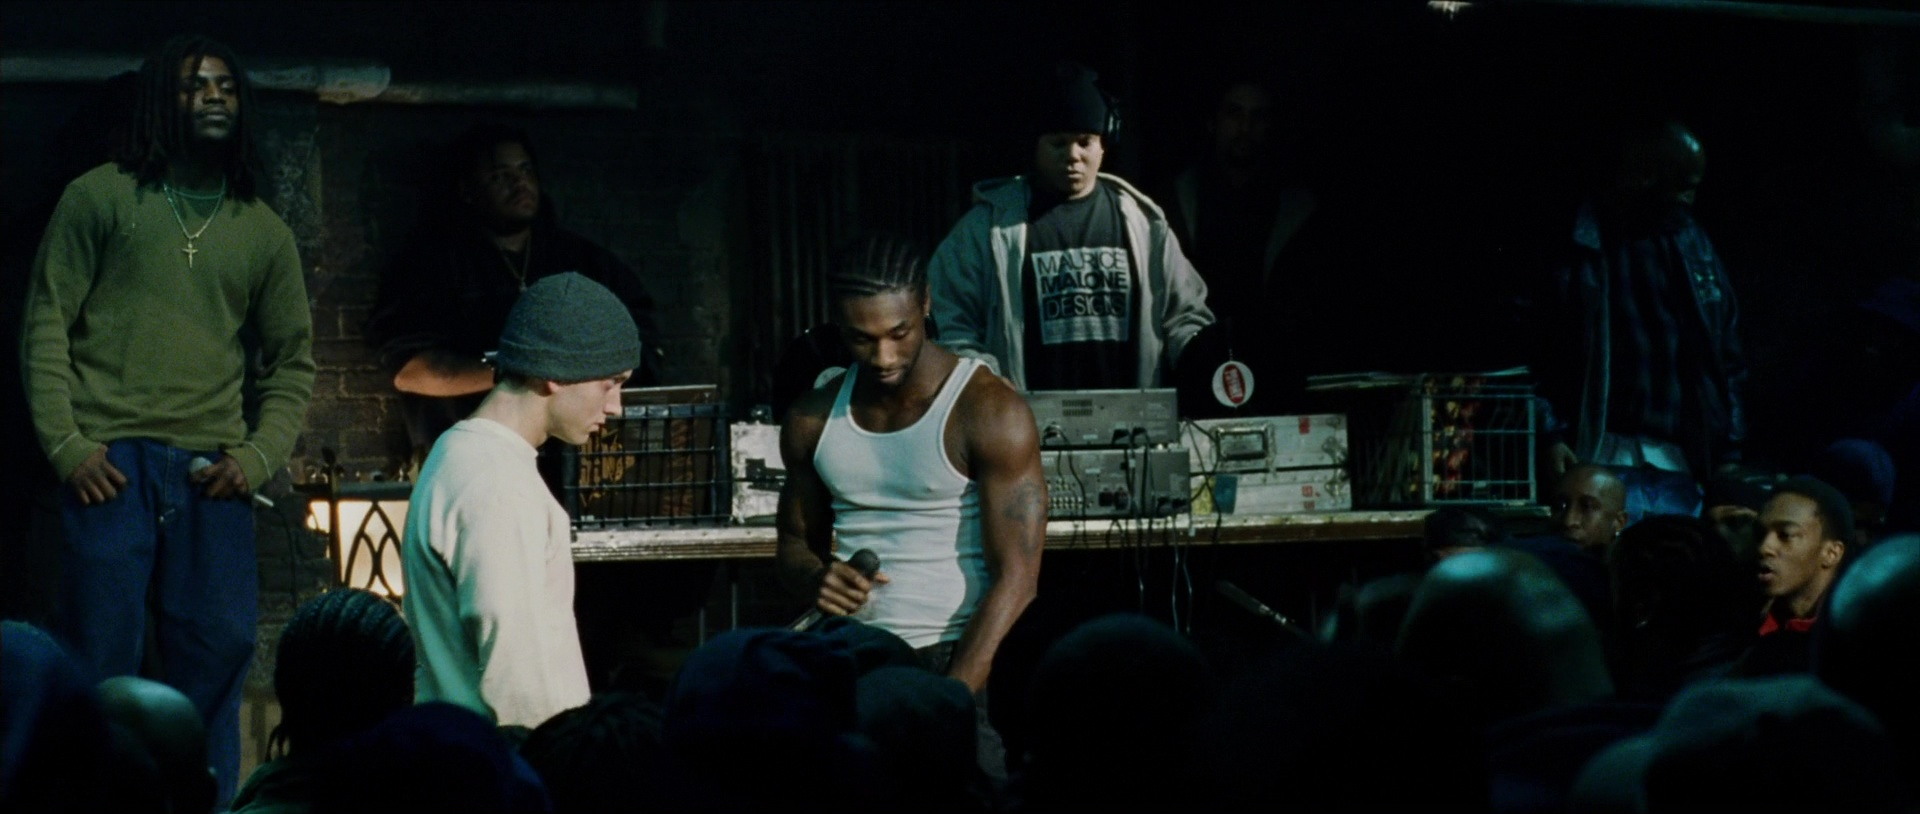 Maurice Malone Designs Men S T Shirt In 8 Mile 2002